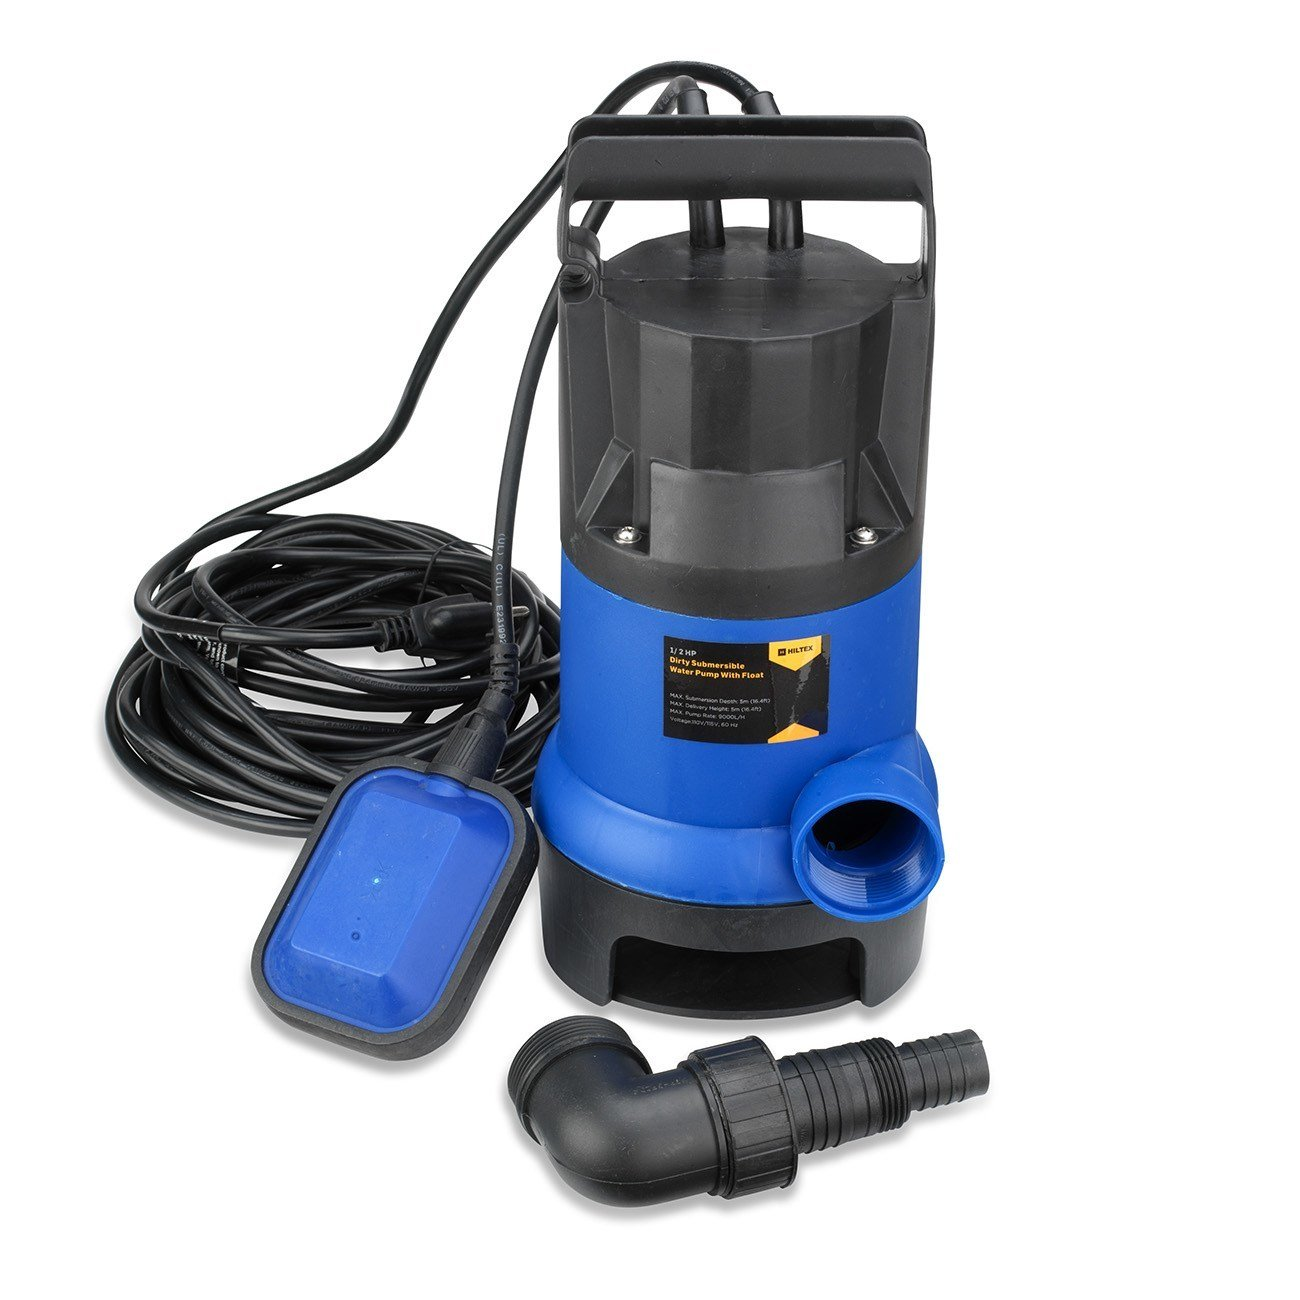 Neiko 50637 Hilltex Dirty Water Submersible Water Pump with Float Switch, 1/2 hp/16'